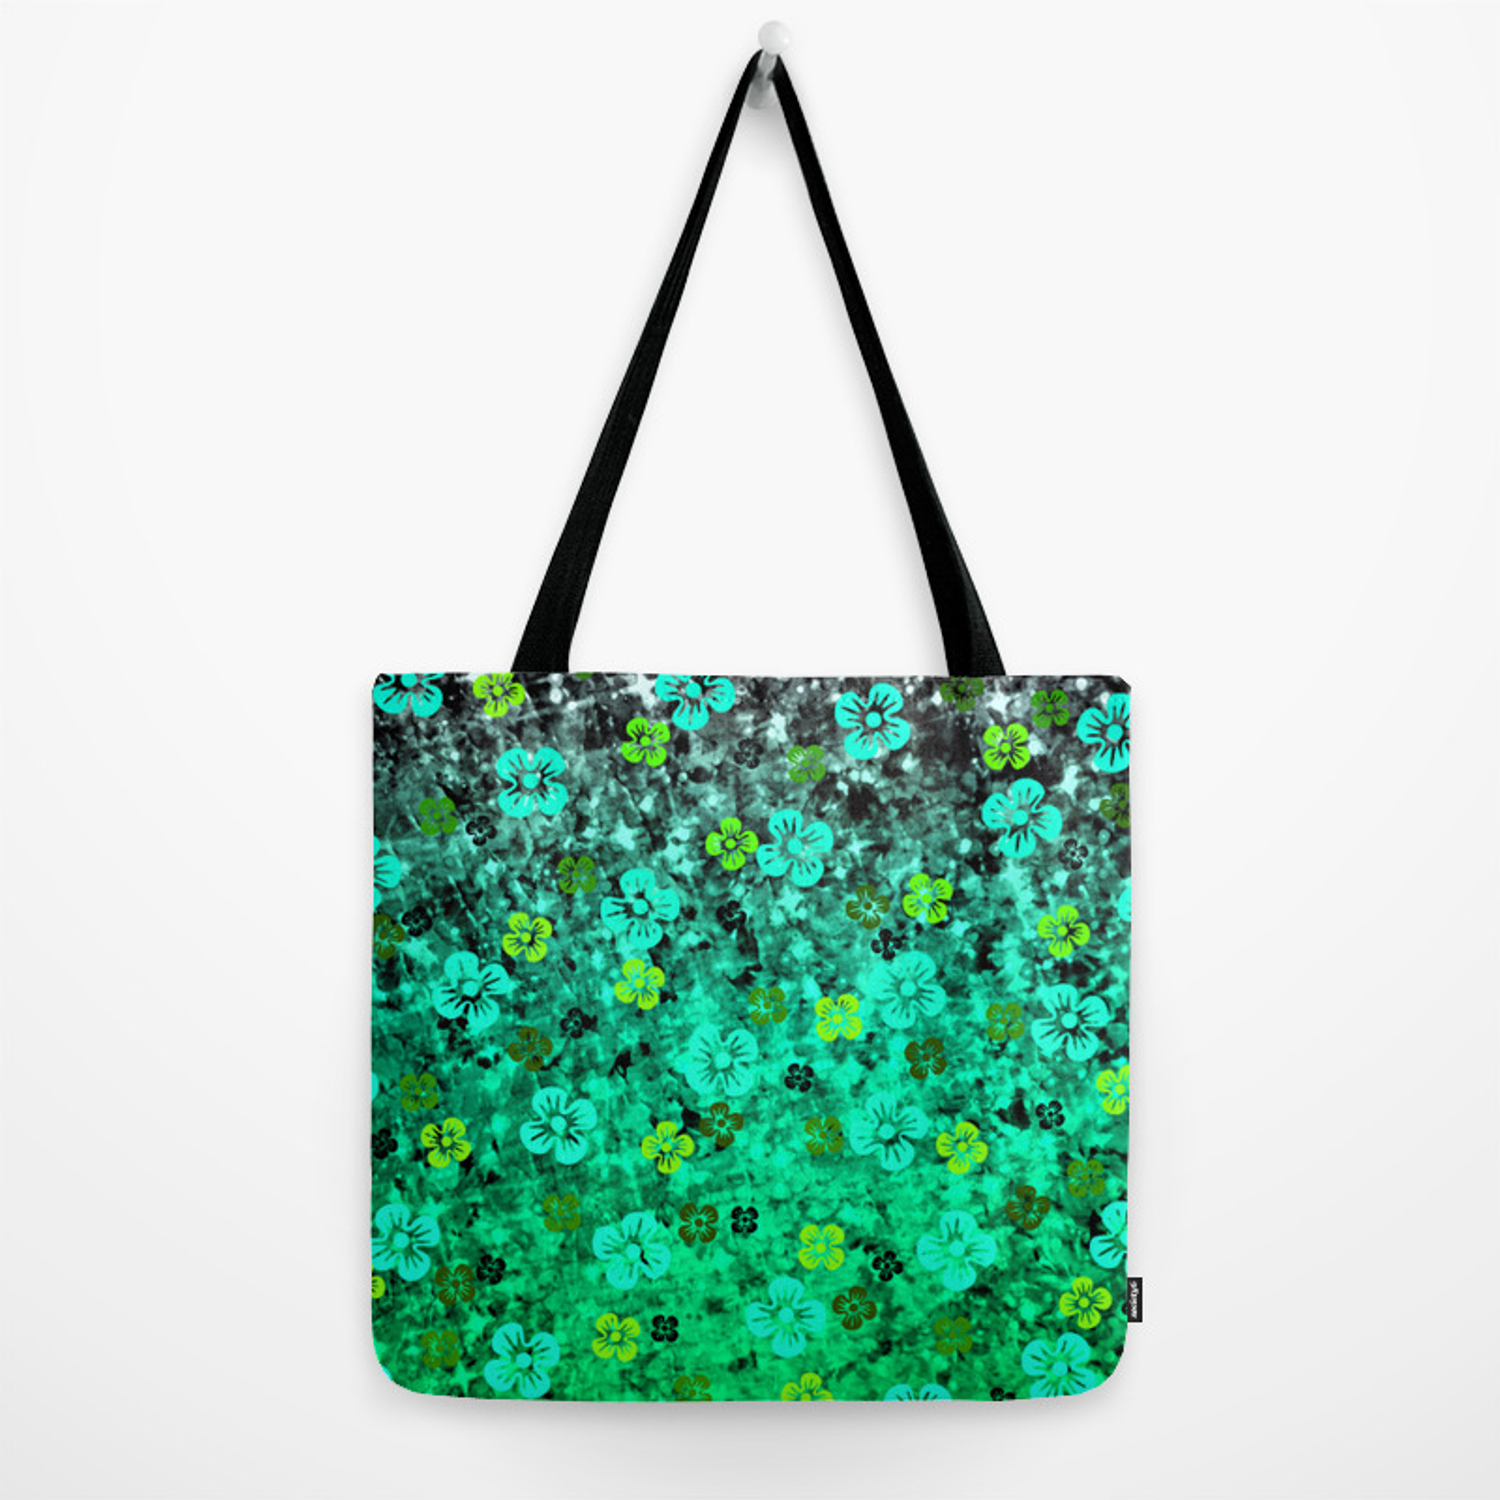 7daedfa5d LUCK OF THE IRISH Colorful Emerald Green Ombre St Patricks Day Floral  Shamrock Four Leaf Clover Art Tote Bag by ebiemporium | Society6